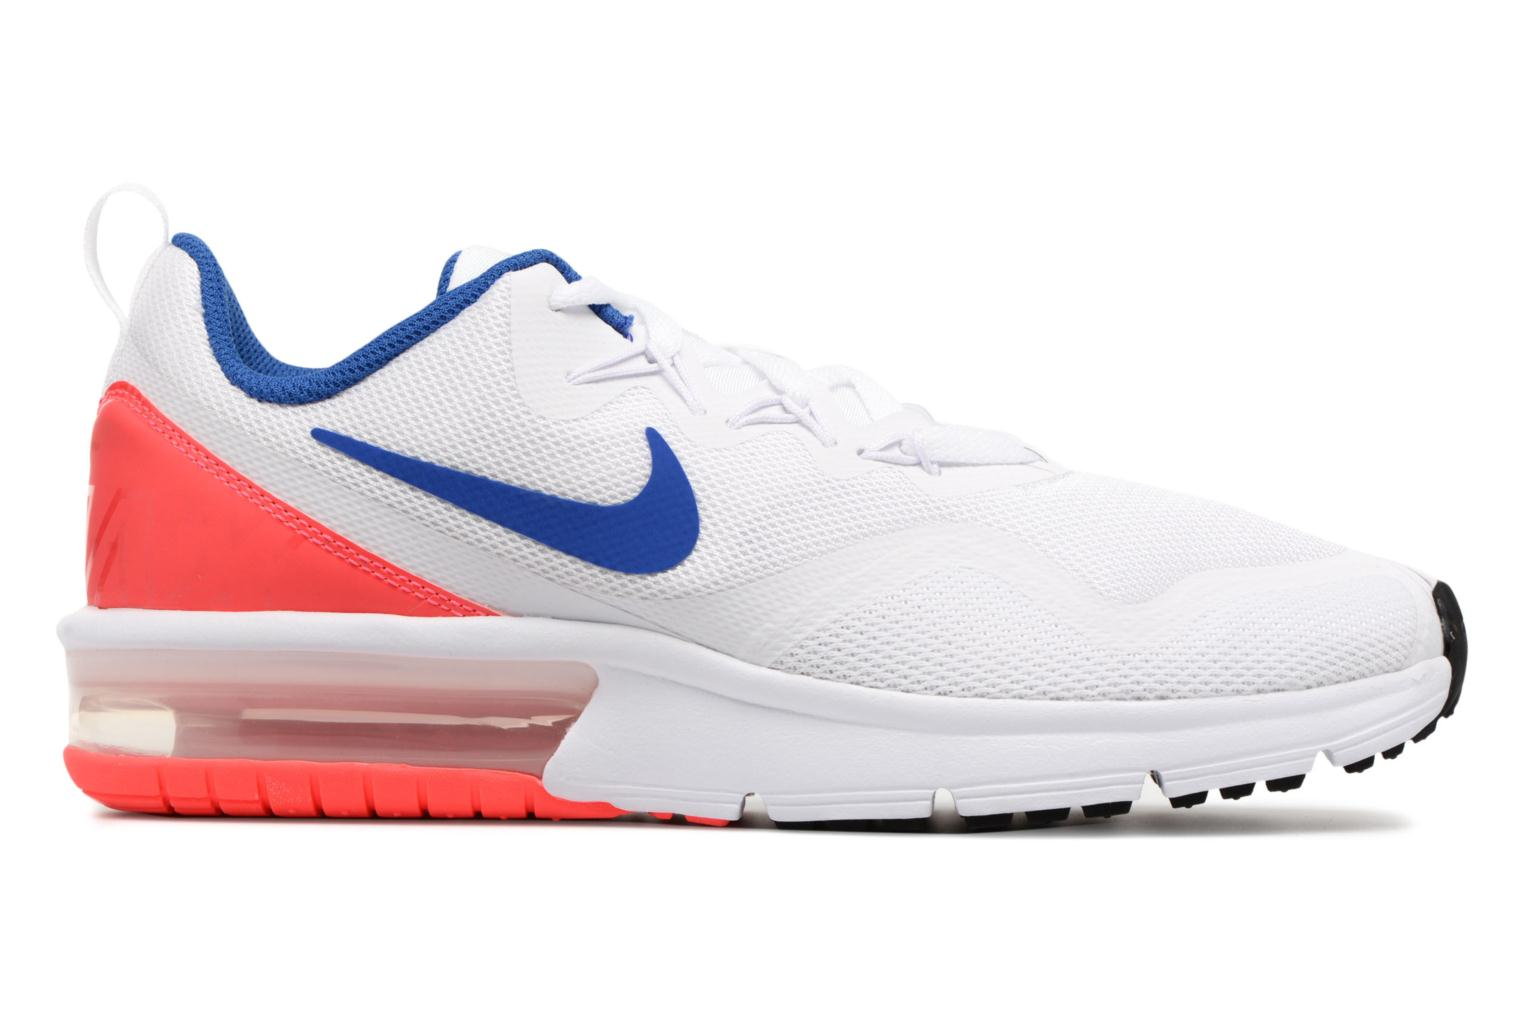 White/Ultramarine-Solar Red-Black Nike Nike Air Max Fury (Gs) (Blanc)